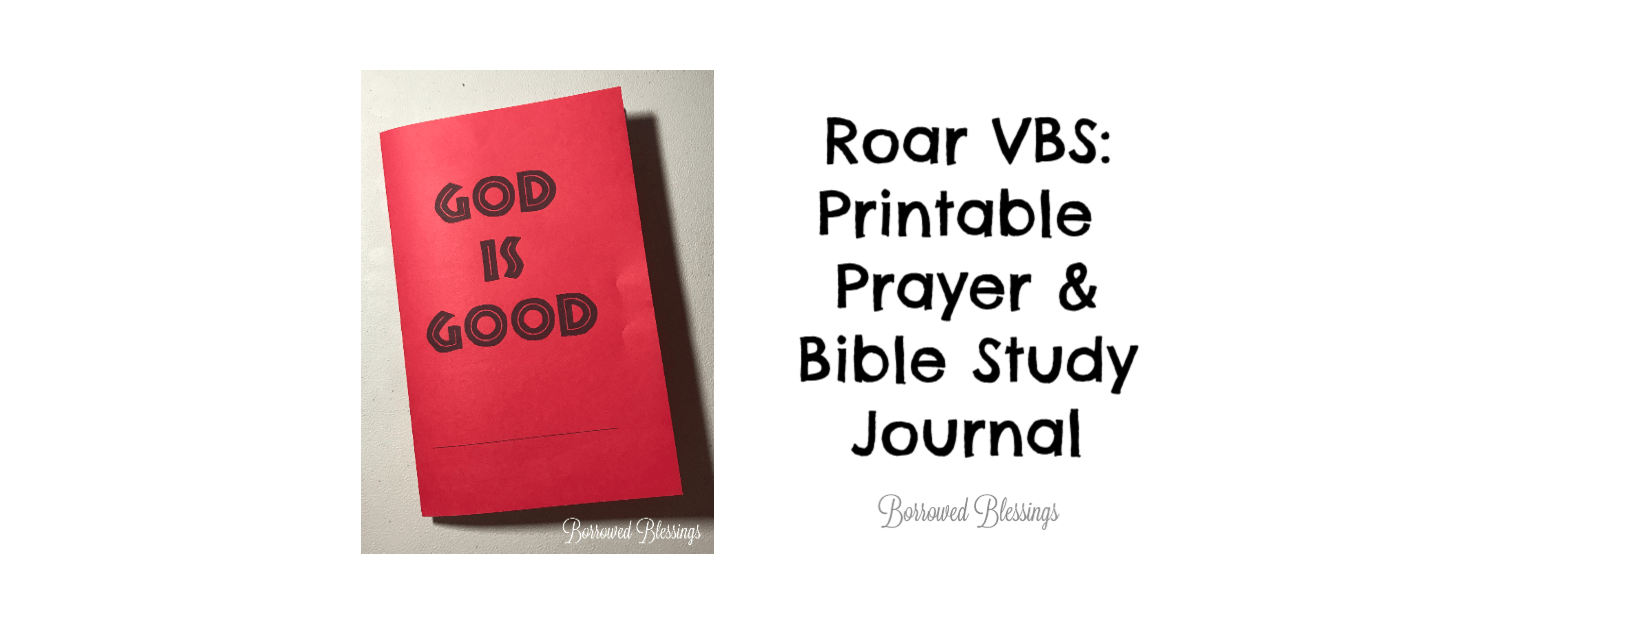 picture about Bible Study Journal Printable called Roar VBS: Printable Prayer Bible Analysis Magazine Â« Borrowed